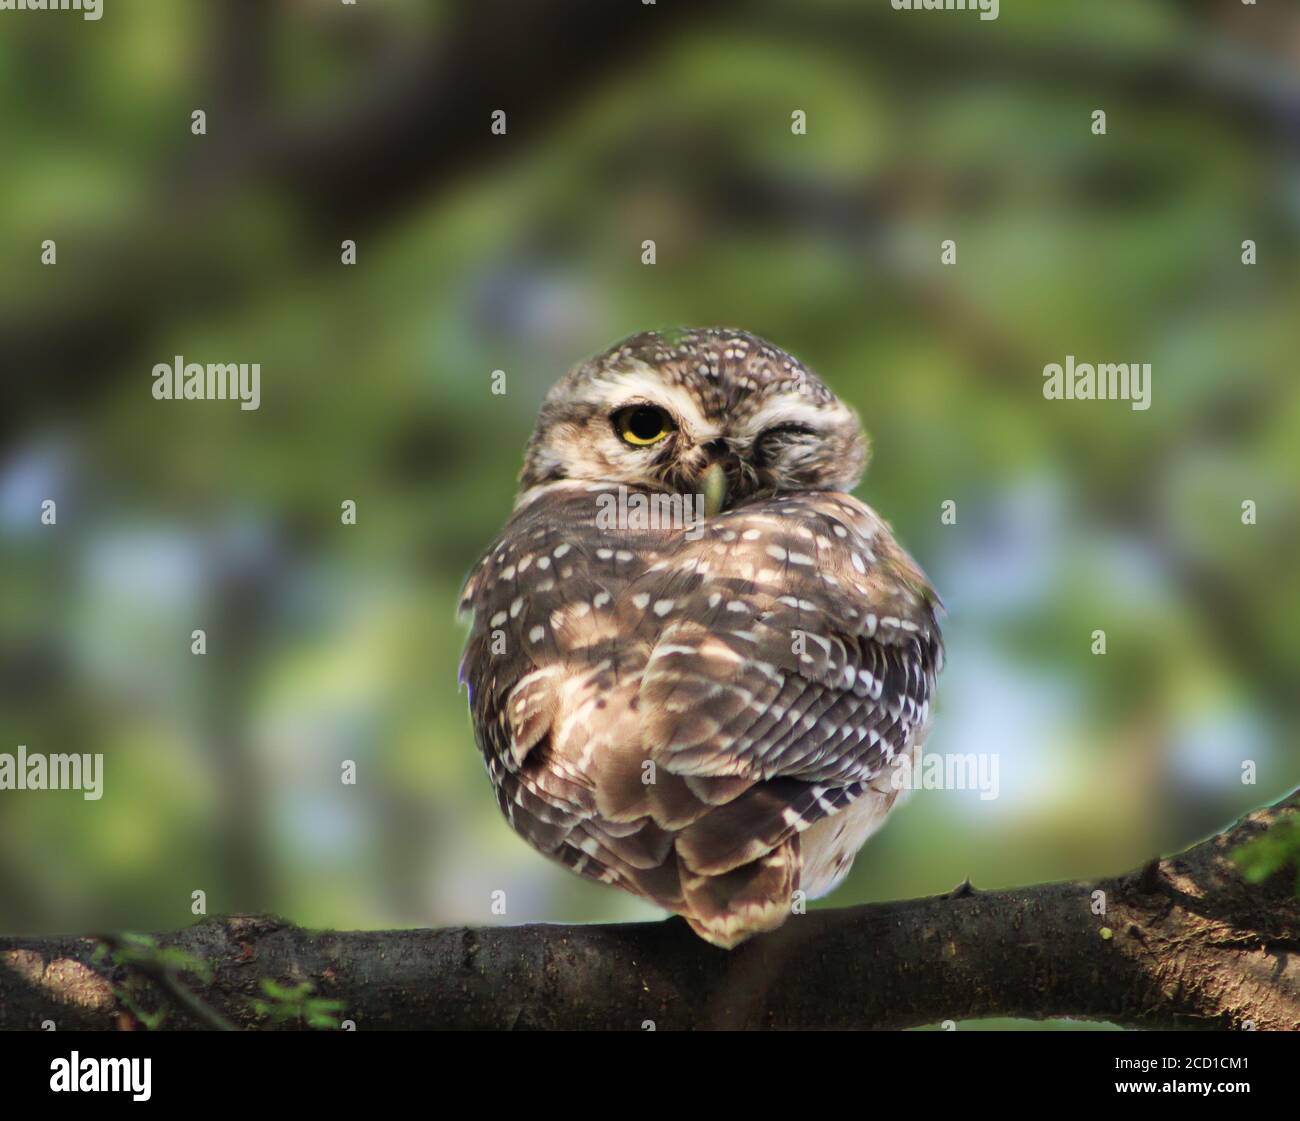 The Winking Owl High Resolution Stock Photography and Images - Alamy